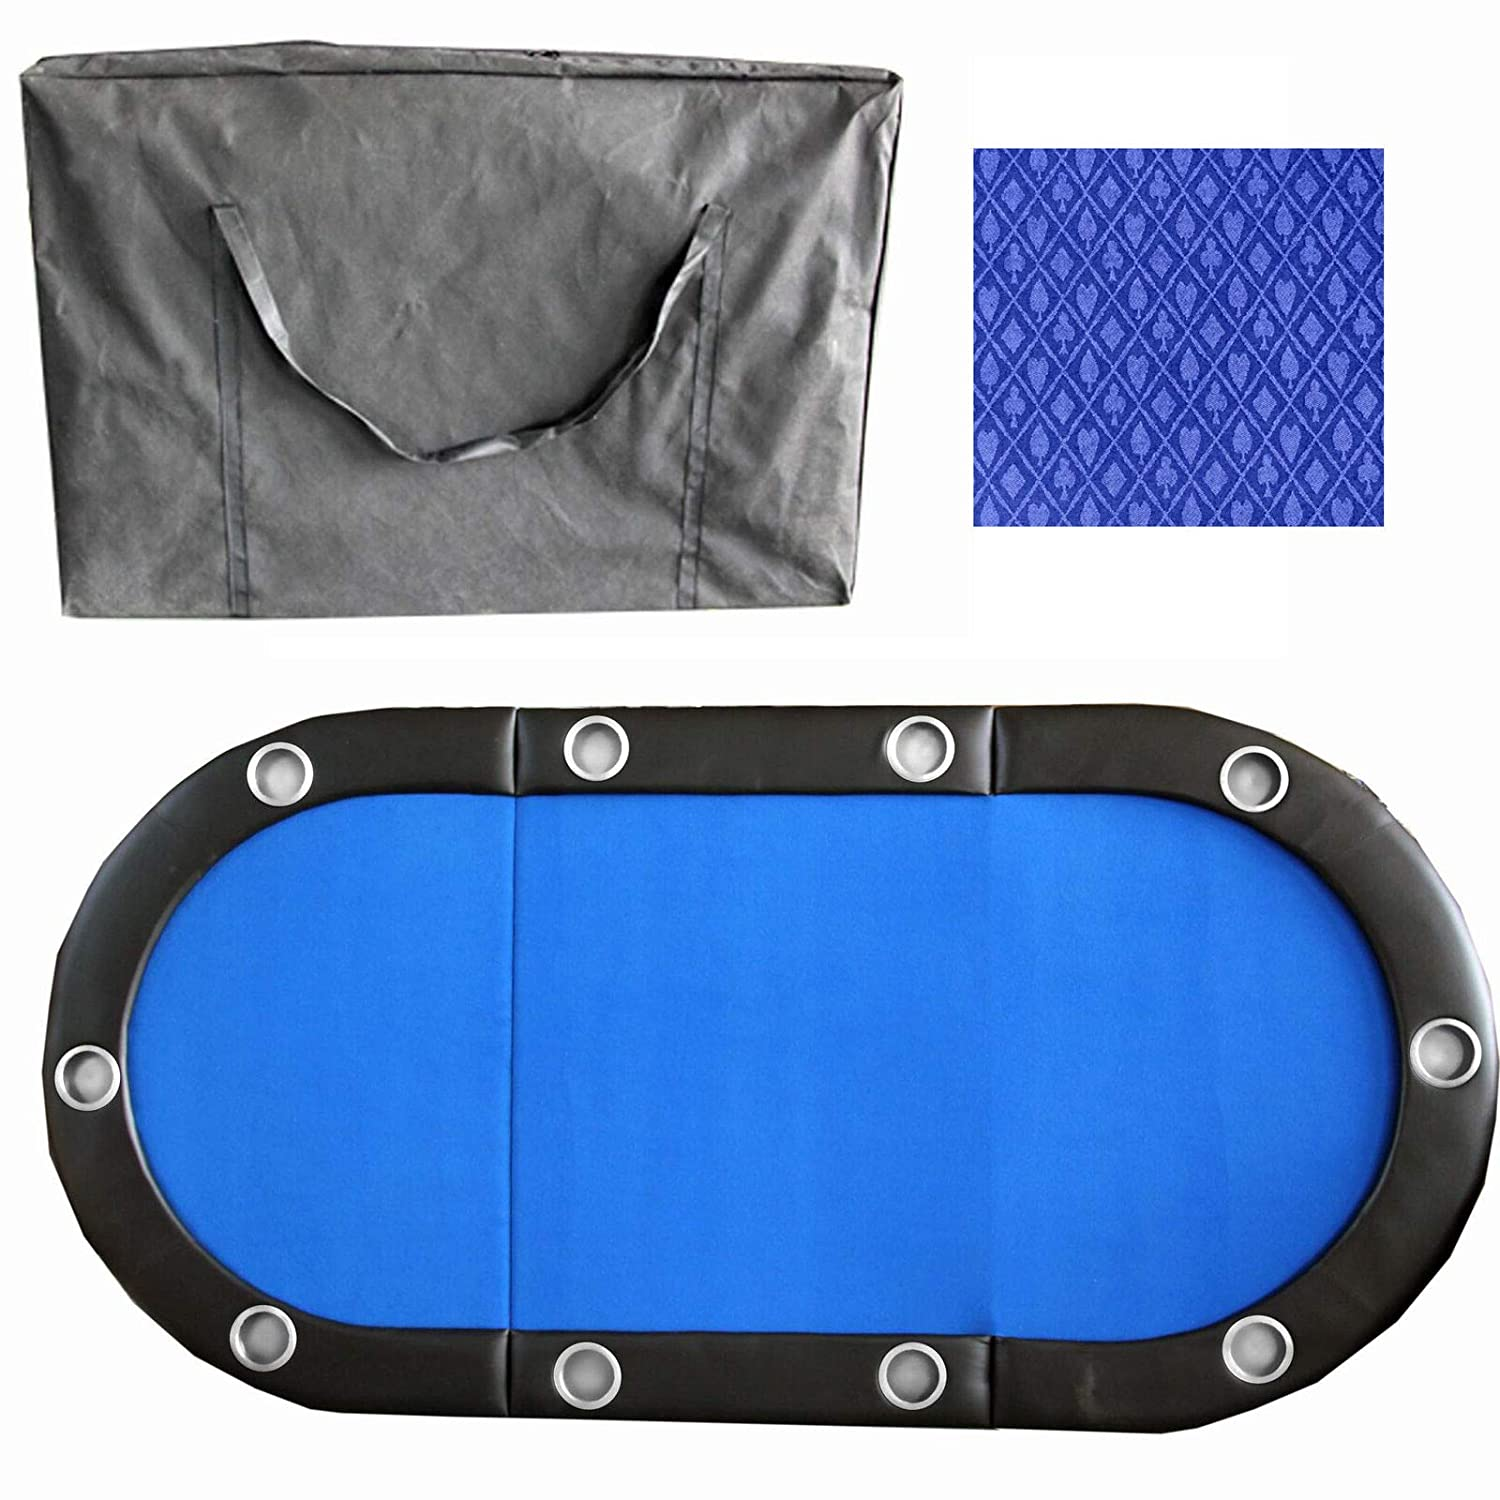 """Durable Sturdy Cup Holder Heavy Duty Portable Foldable Water Resistant Suitable for Home Office Party Indoor Outdoor Travel Picotech 84/"""" 10Player Poker Table Top with Speed Cloth and Carrying Case"""